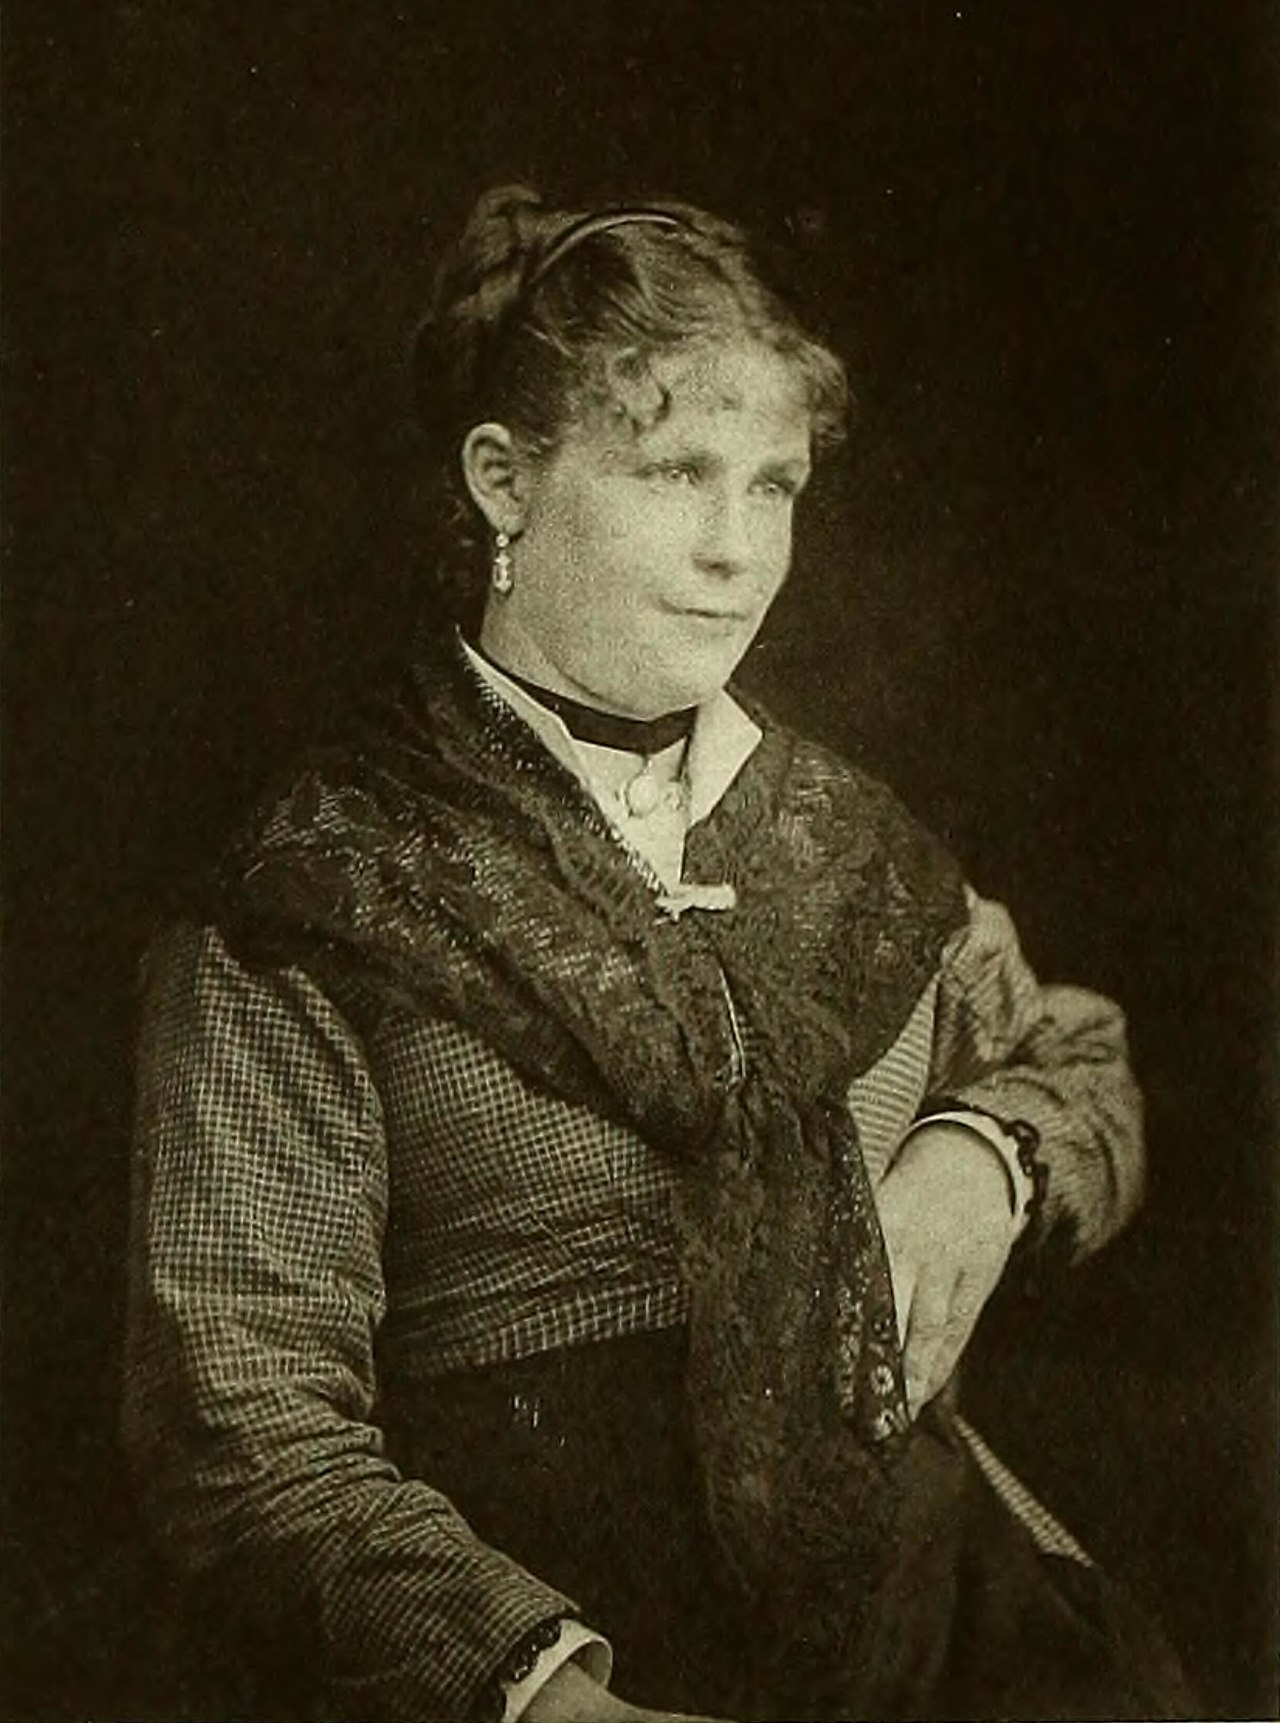 A black-and-white portrait of a young woman wearing a checkered dress and a shawl